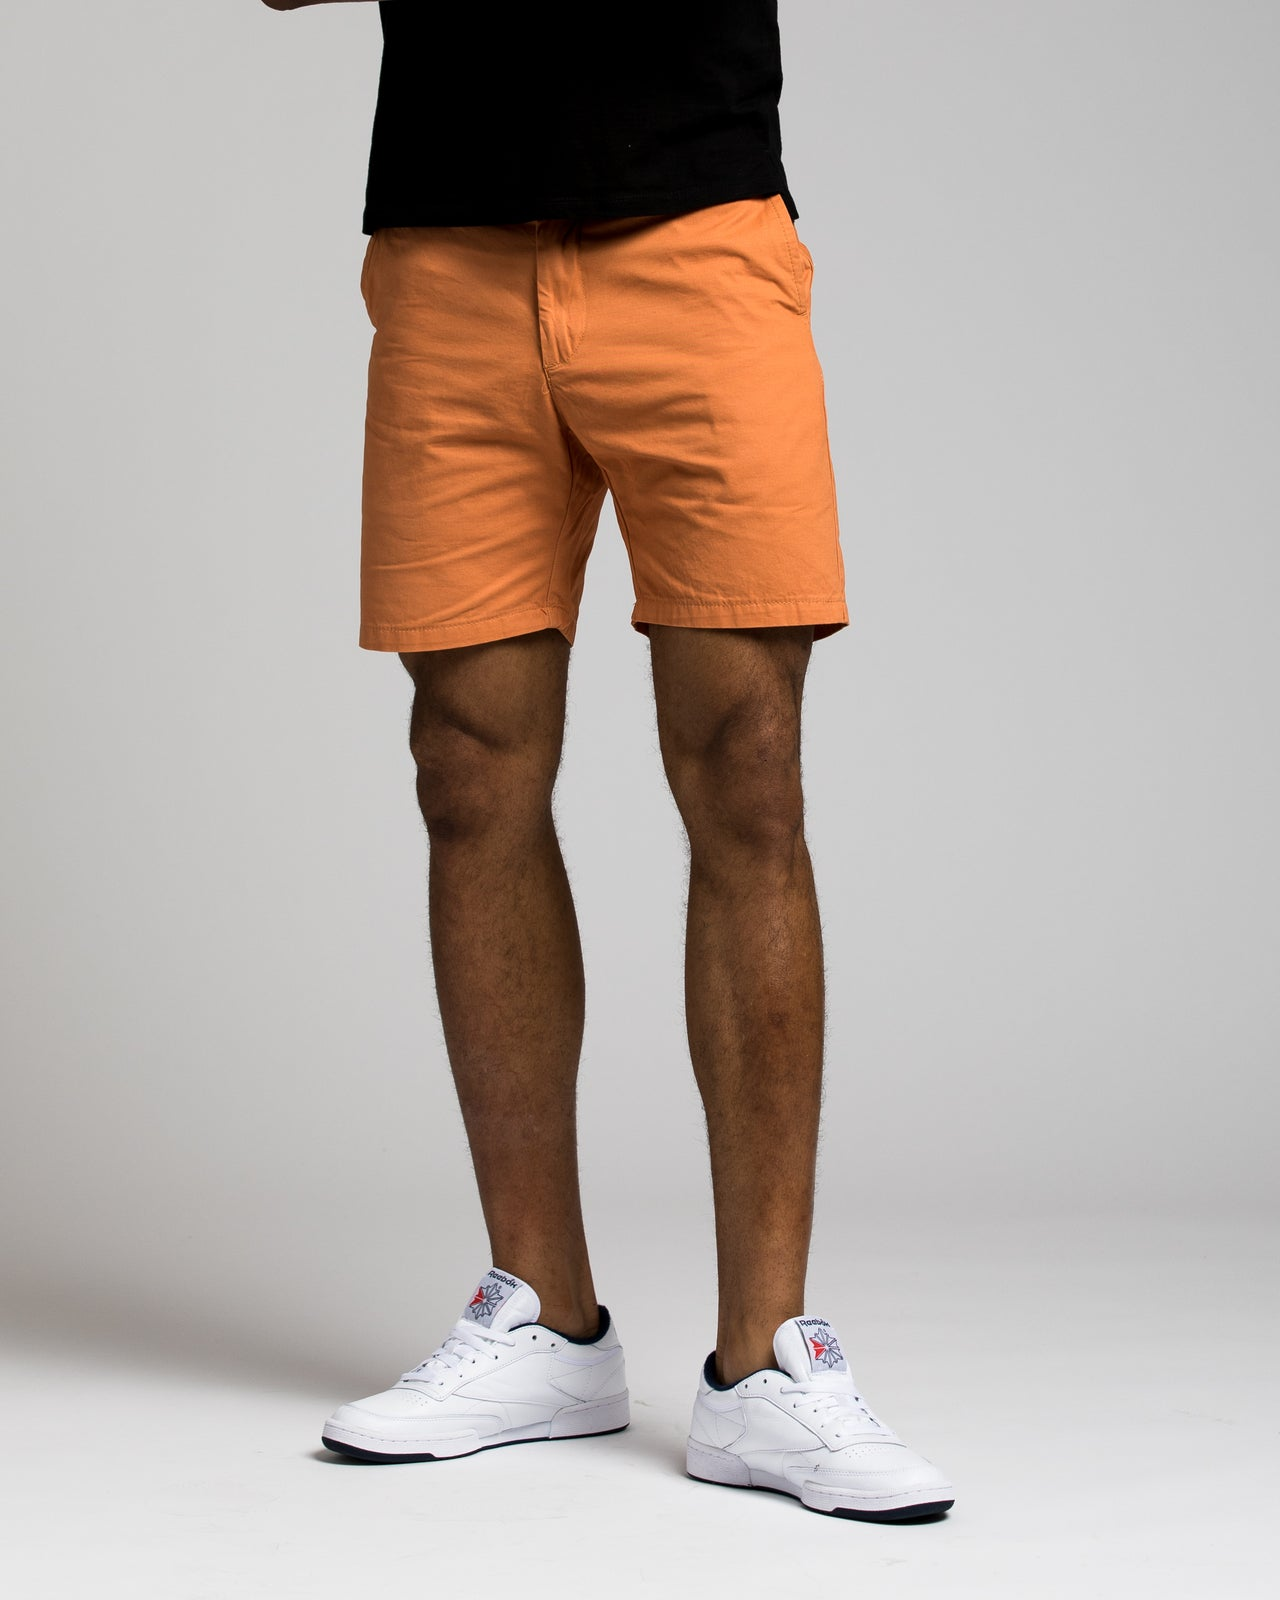 7 Inch Chino Shorts - Color: Faded Orange | Orange